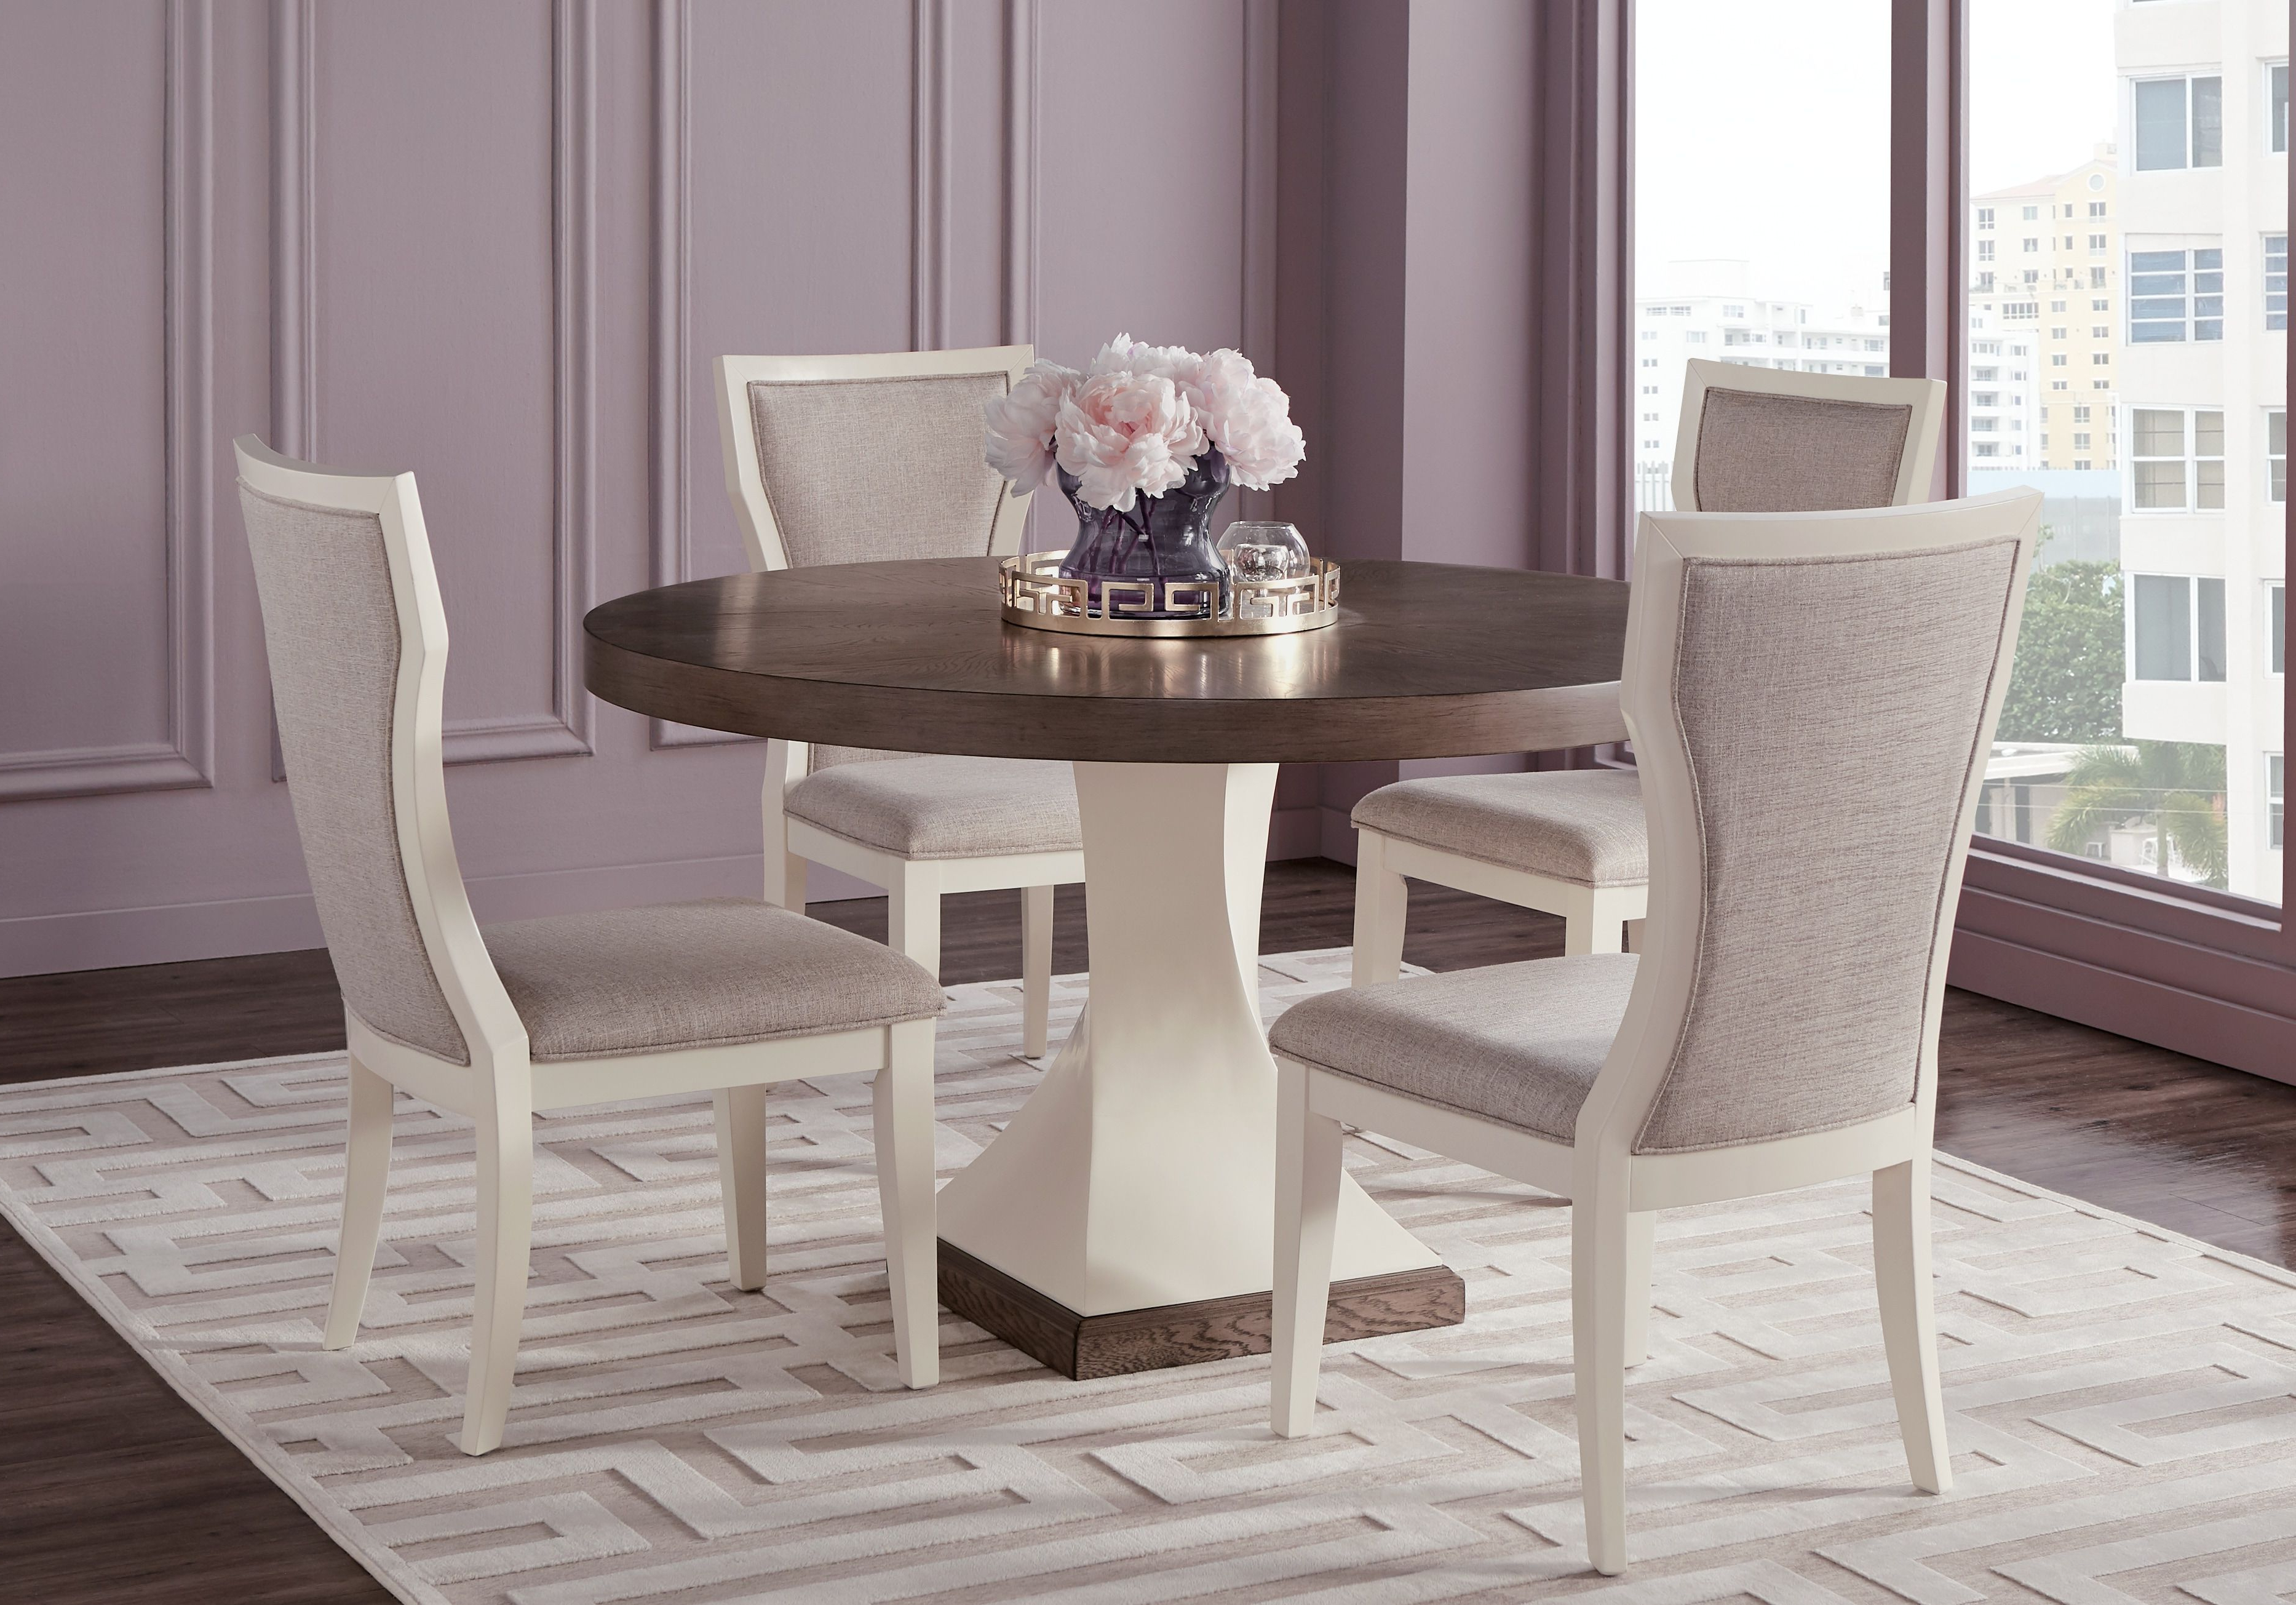 Lamotte 5 Piece Dining Sets Within Well Known Sofia Vergara Santa Fiora White 5 Pc Round Dining Room In  (View 8 of 25)